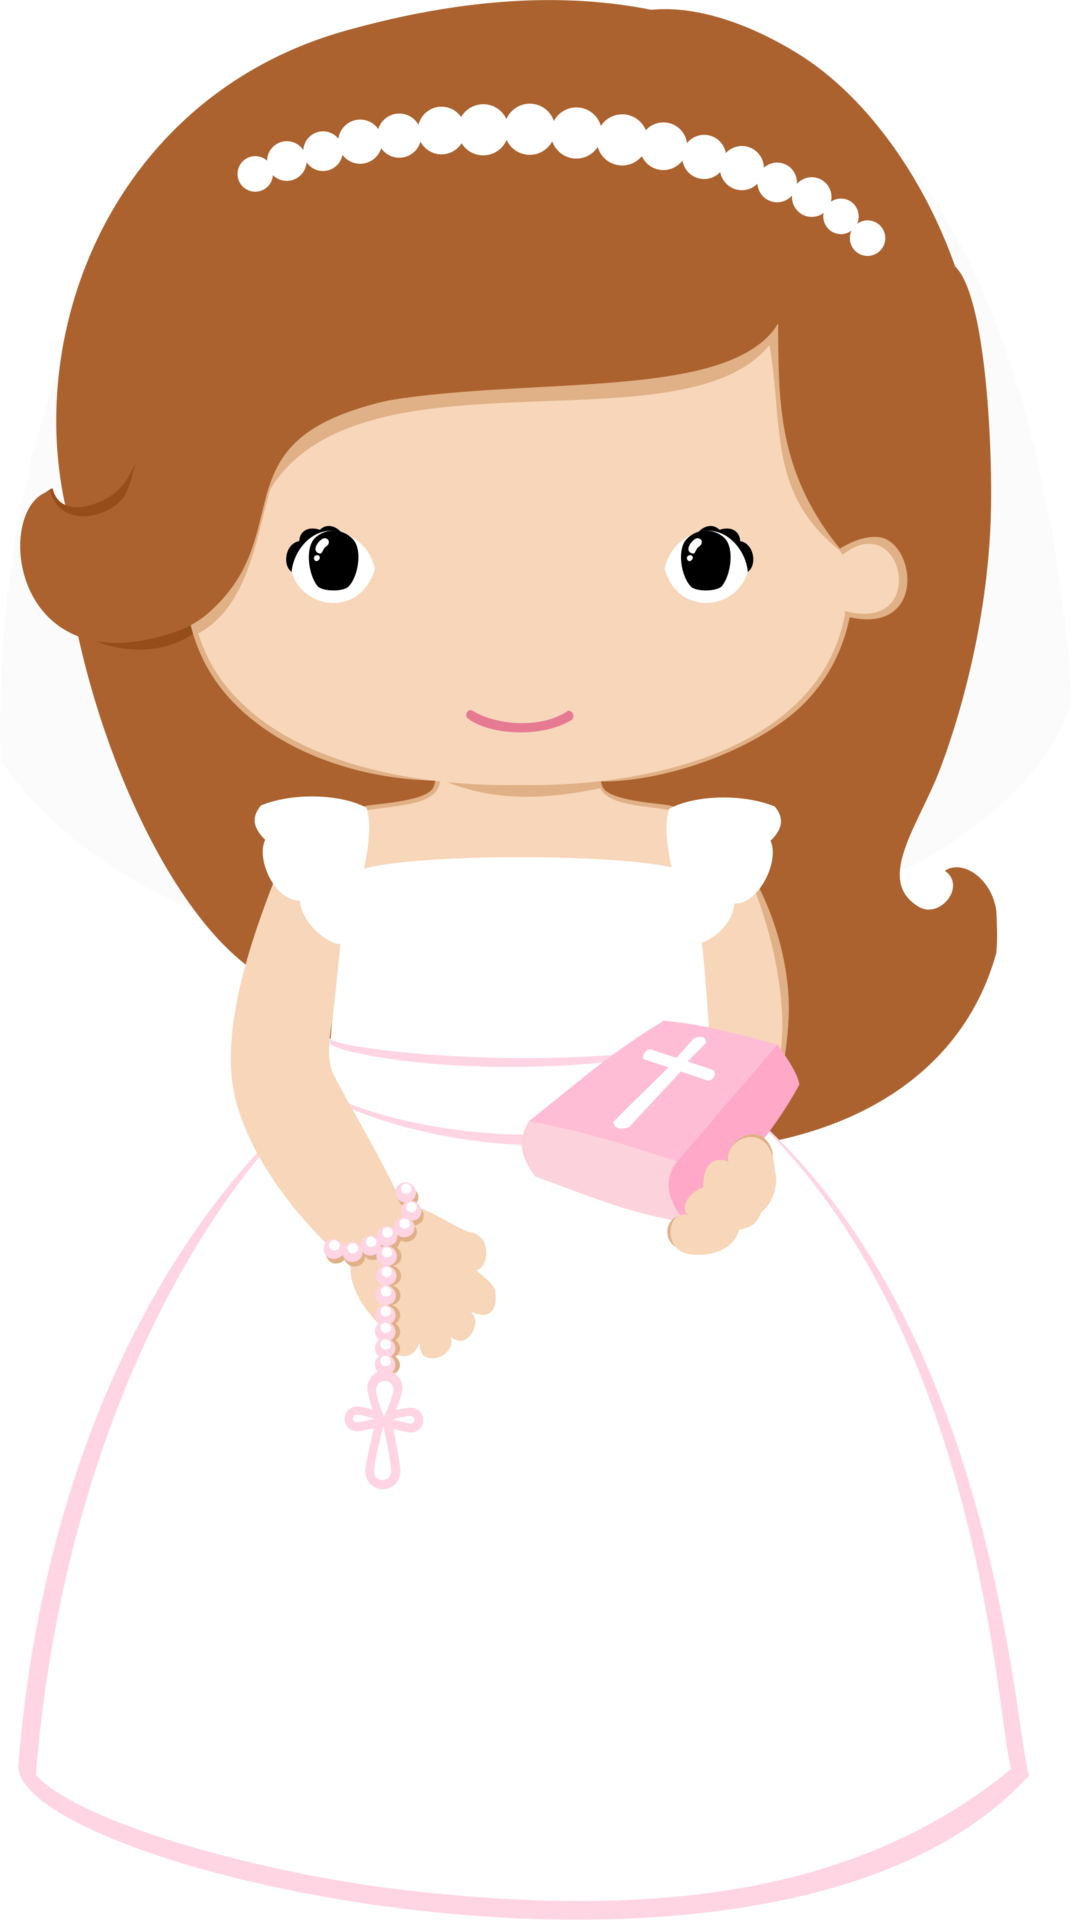 Communion clipart mi first. Pin by chiara d